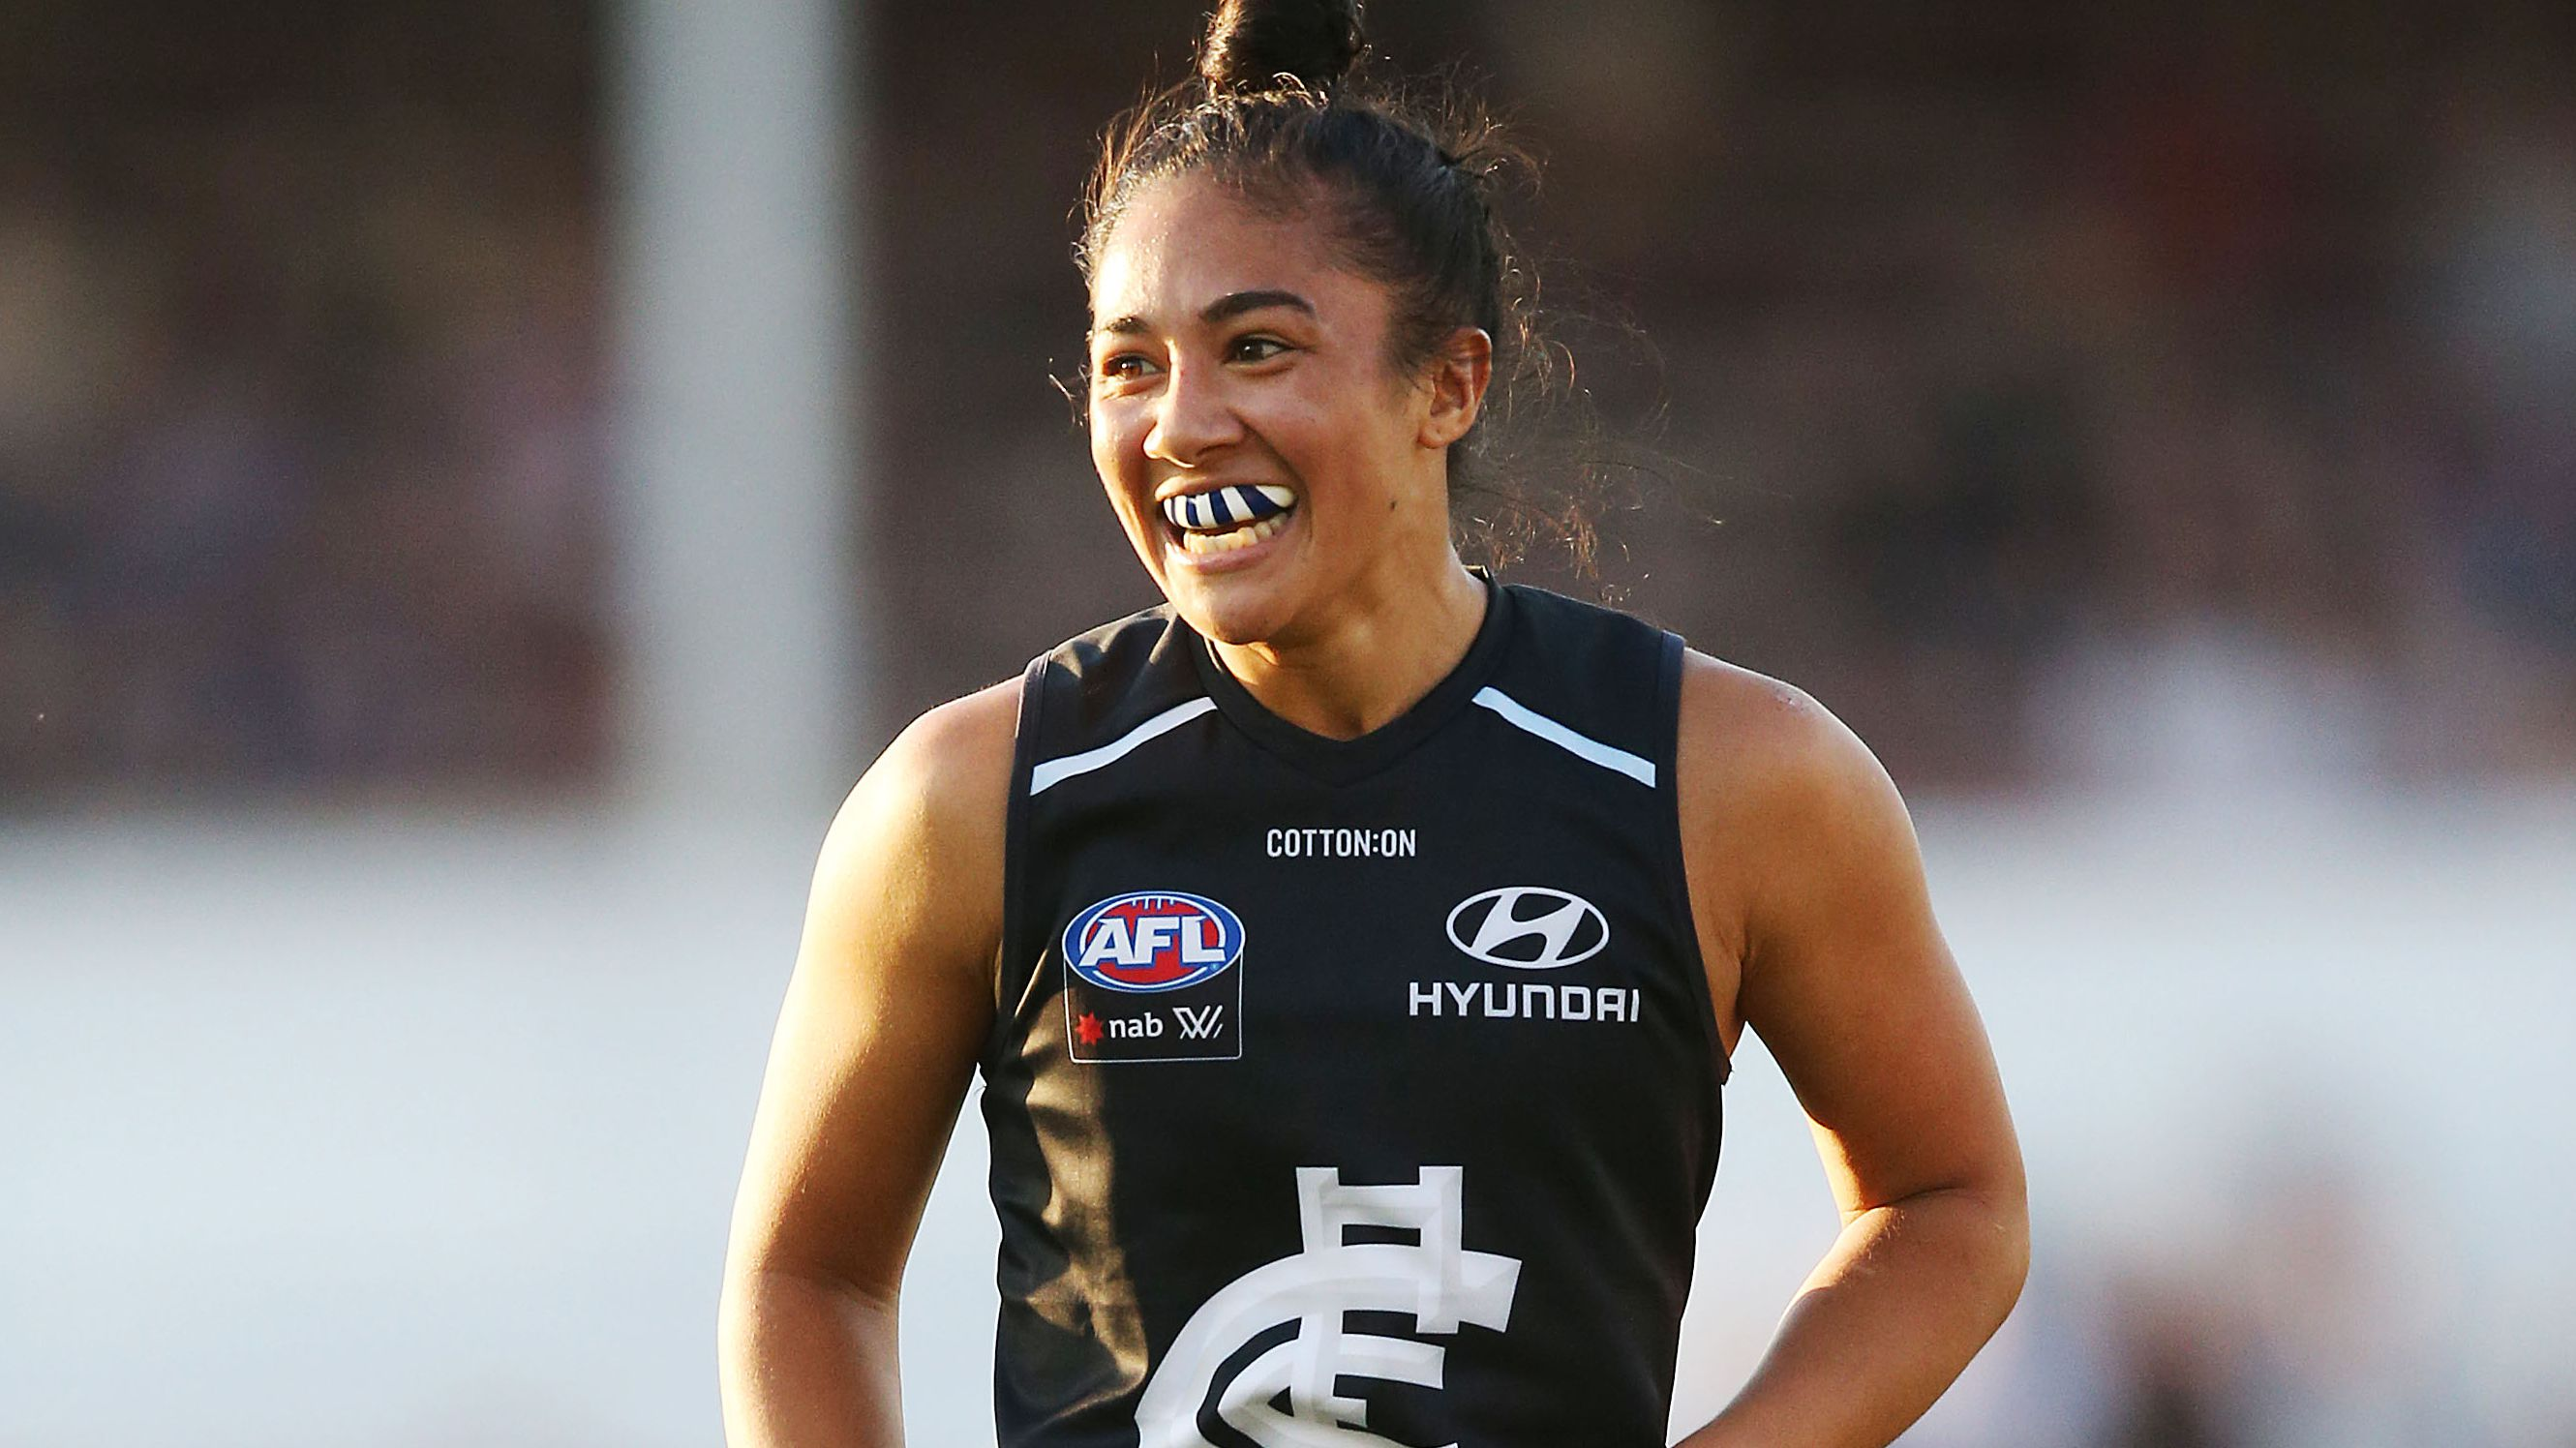 Darcy Vescio reveals how AFLW has changed things for next generation